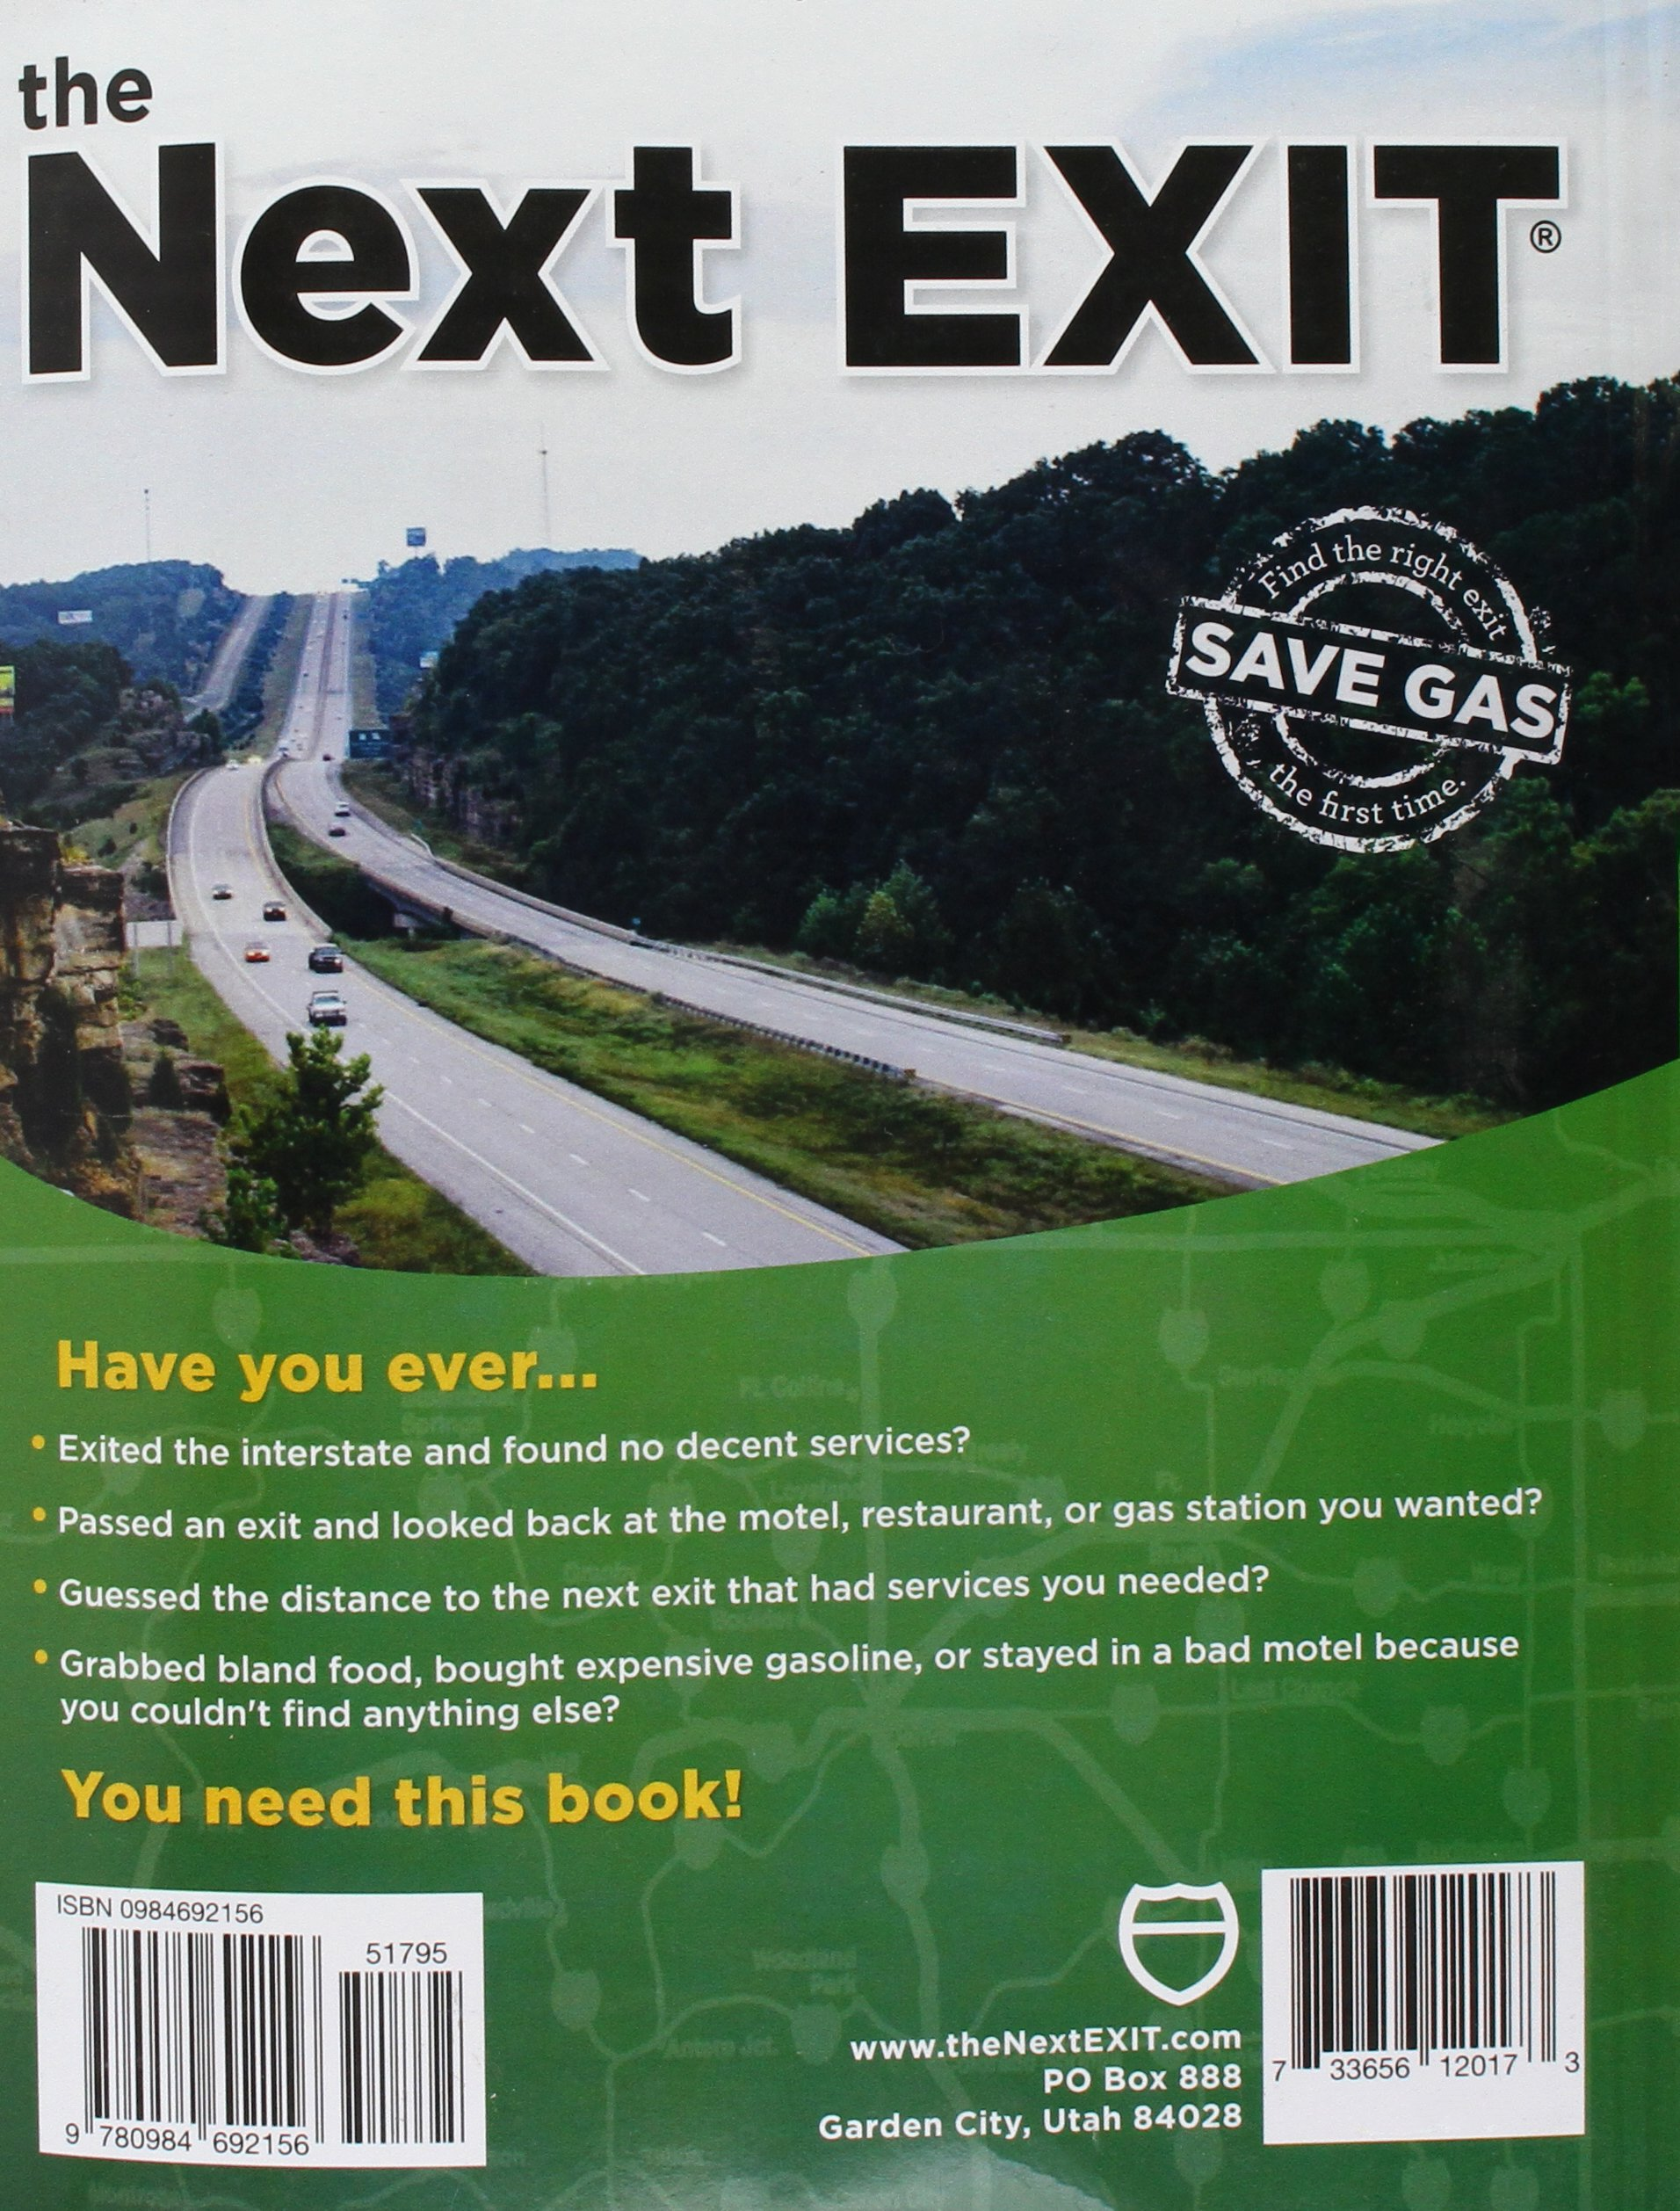 THE NEXT EXIT EPUB